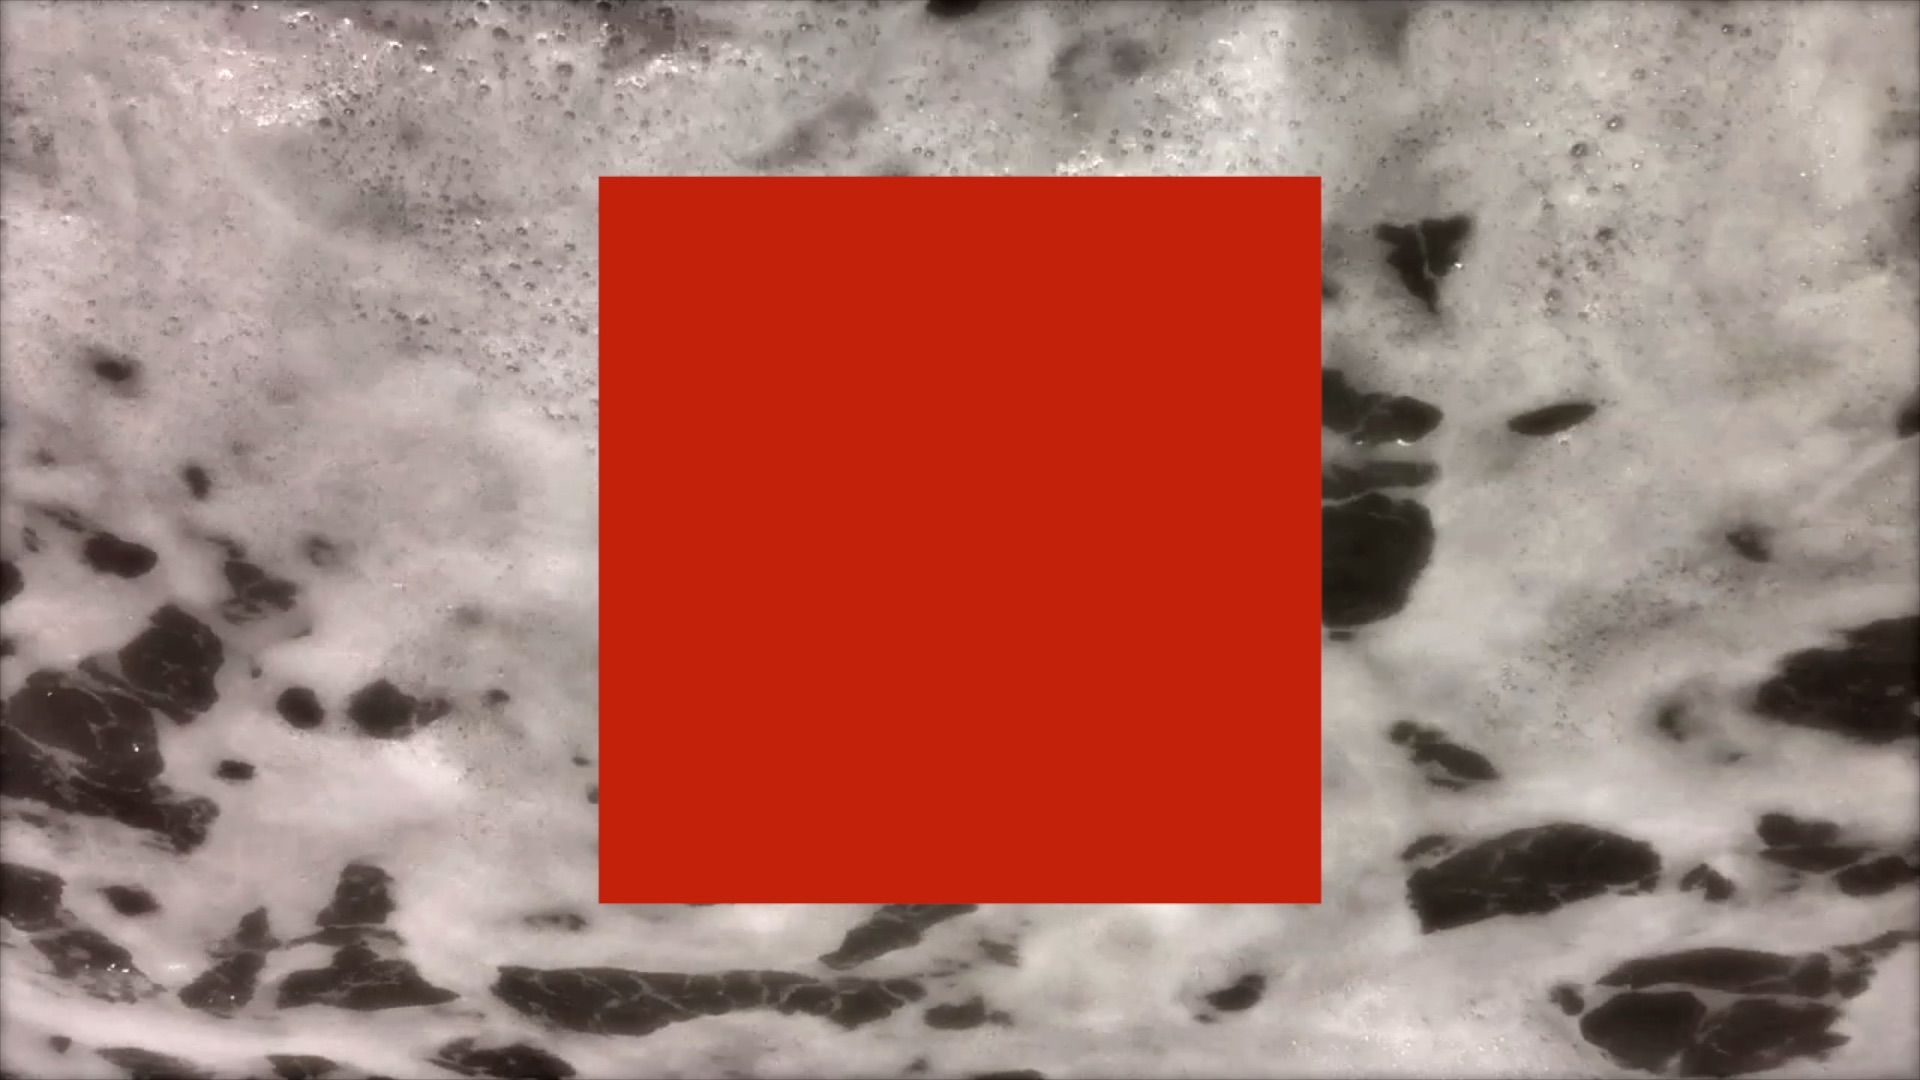 label-dalbin_table-video-stephan-breuer_study-of-a-red-square.jpg